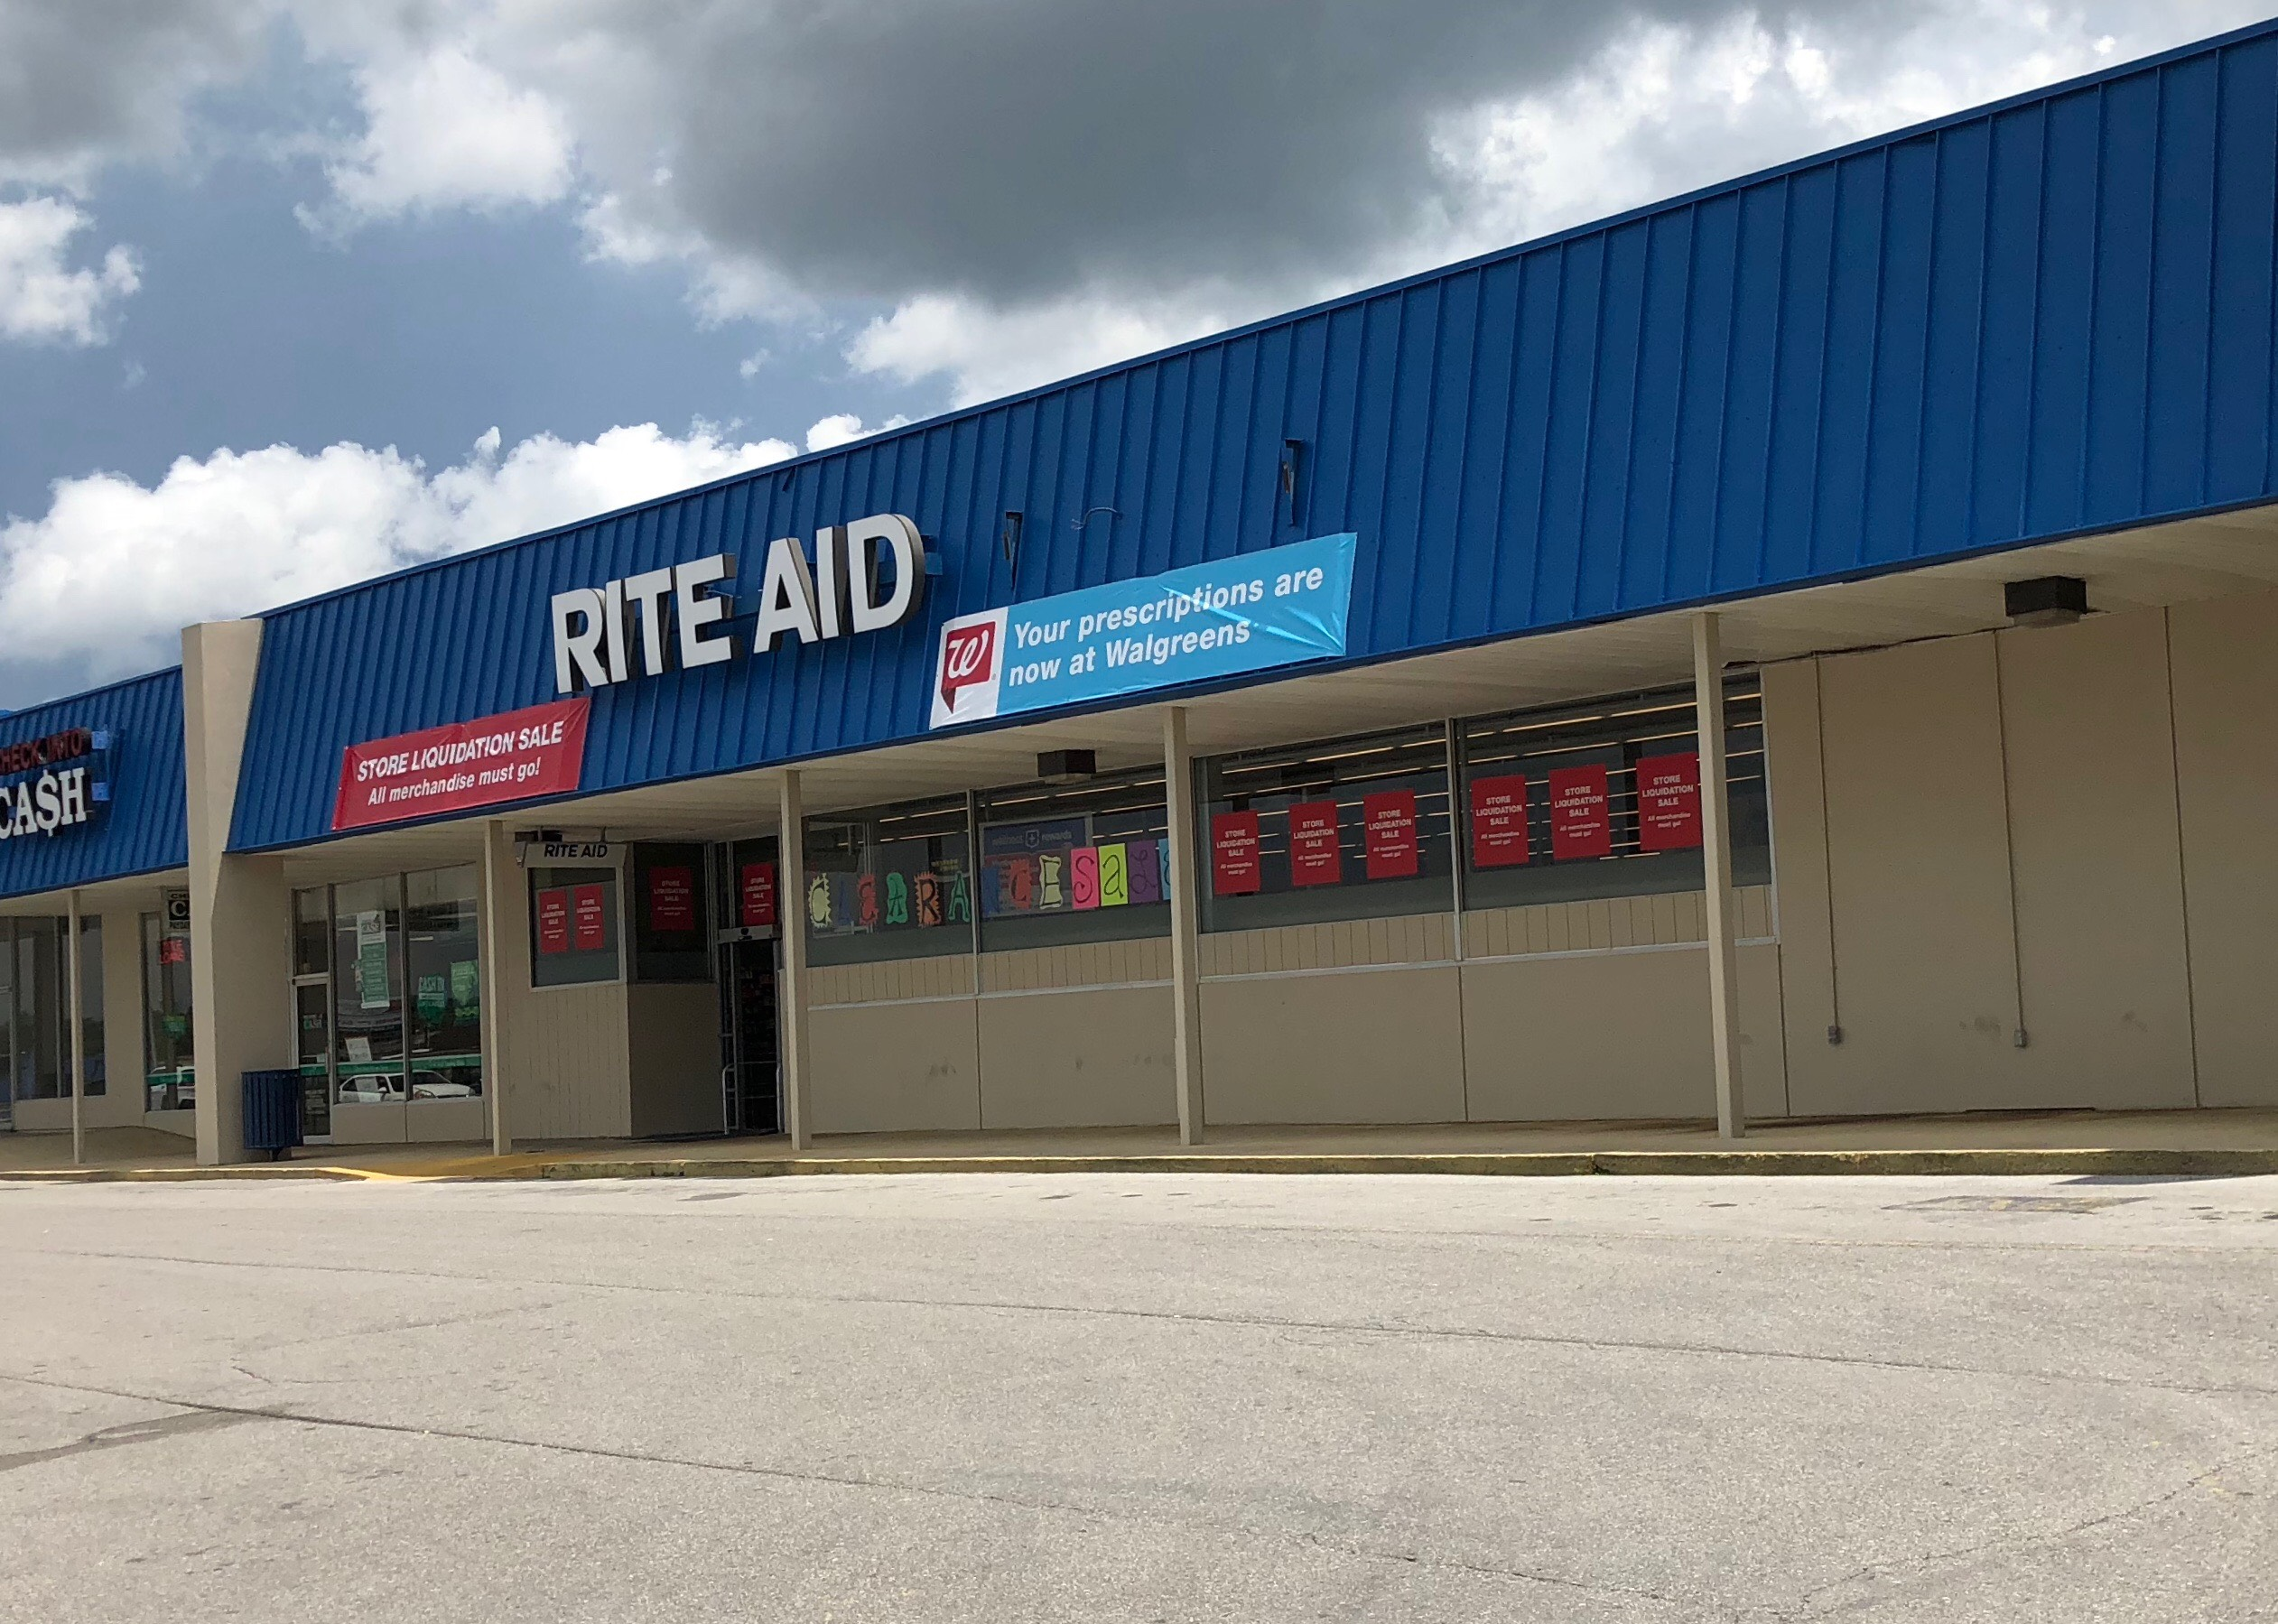 5be7cd5434 The Rite Aid store on S. Willow Avenue is in the middle of a liquidation  sale in an effort to sell any remaining merchandise before the Cookeville  store ...